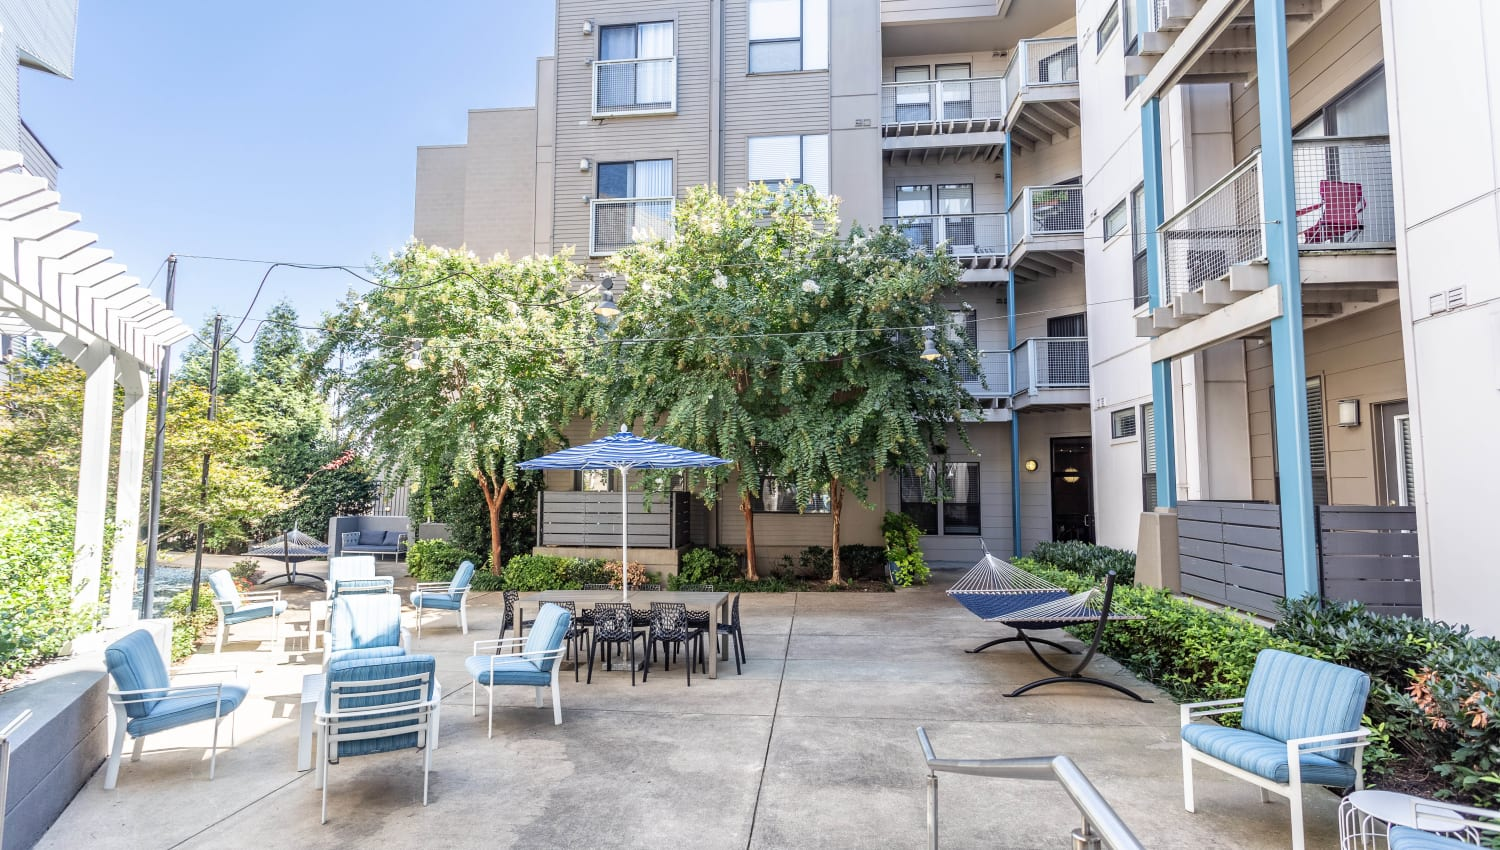 Exterior courtyard with comfortable places to relax at Olympus Midtown in Nashville, Tennessee